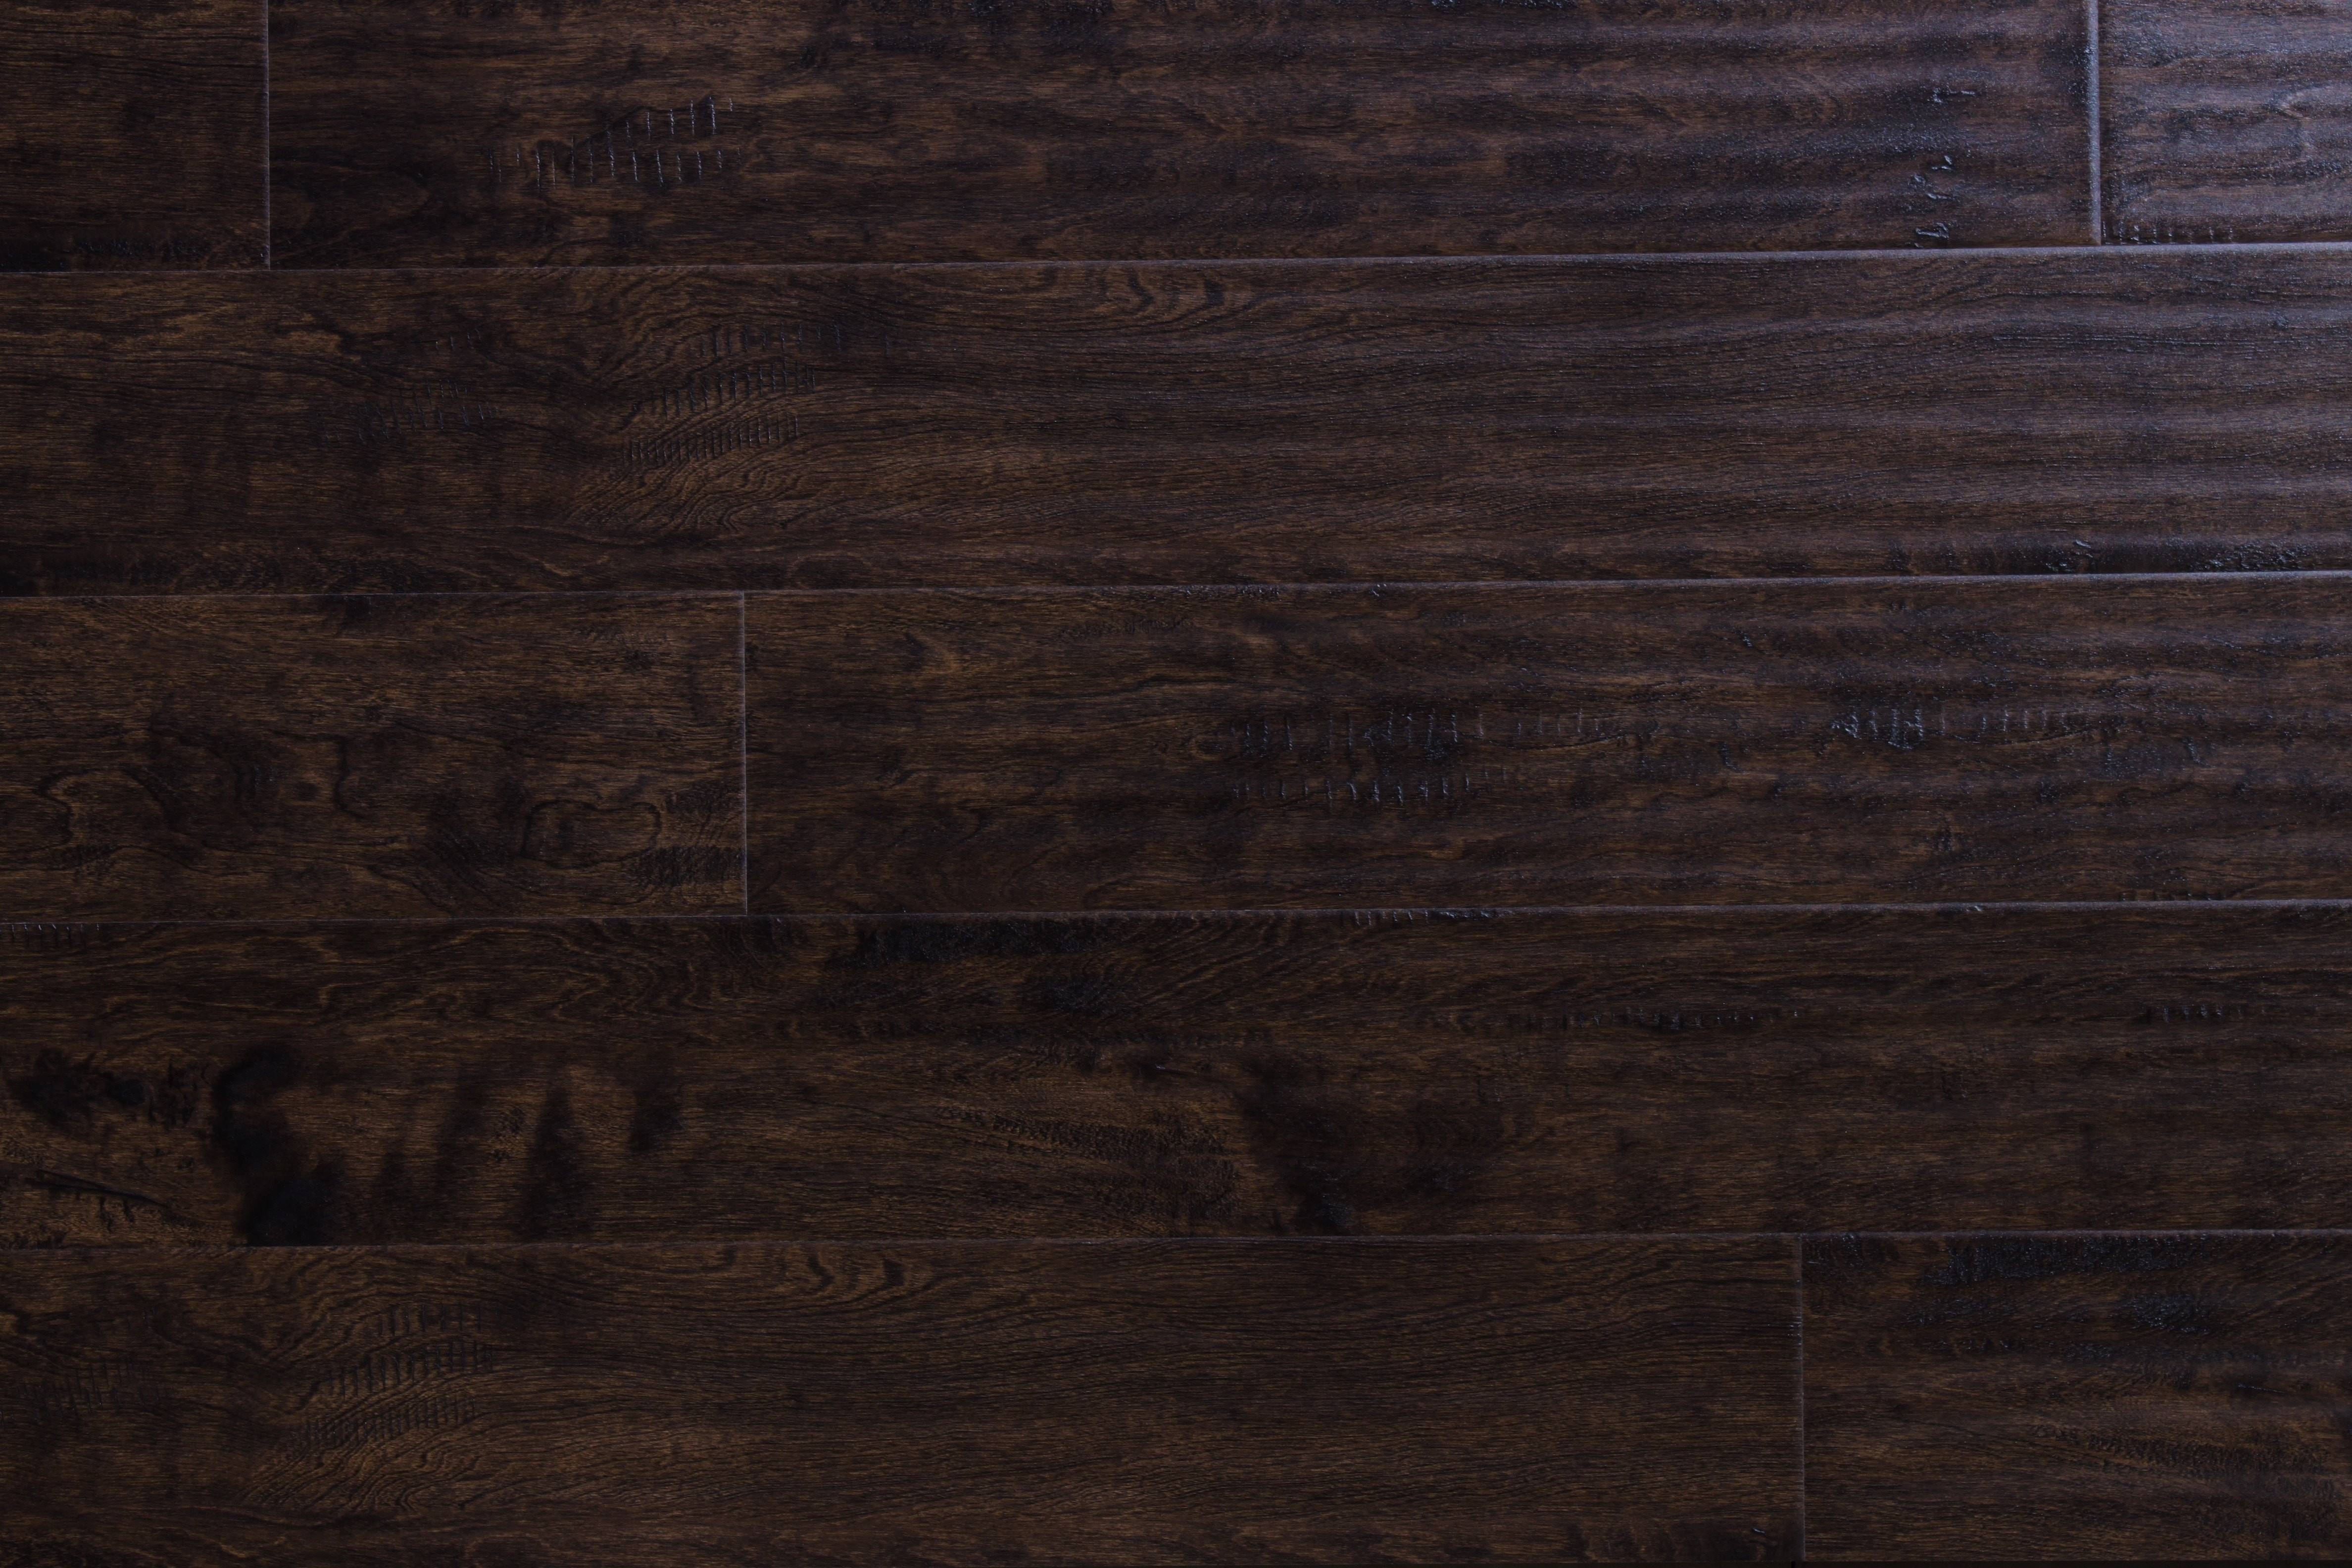 how much does it cost to install new hardwood floors of wood flooring free samples available at builddirecta within tailor multi gb bb8d3c